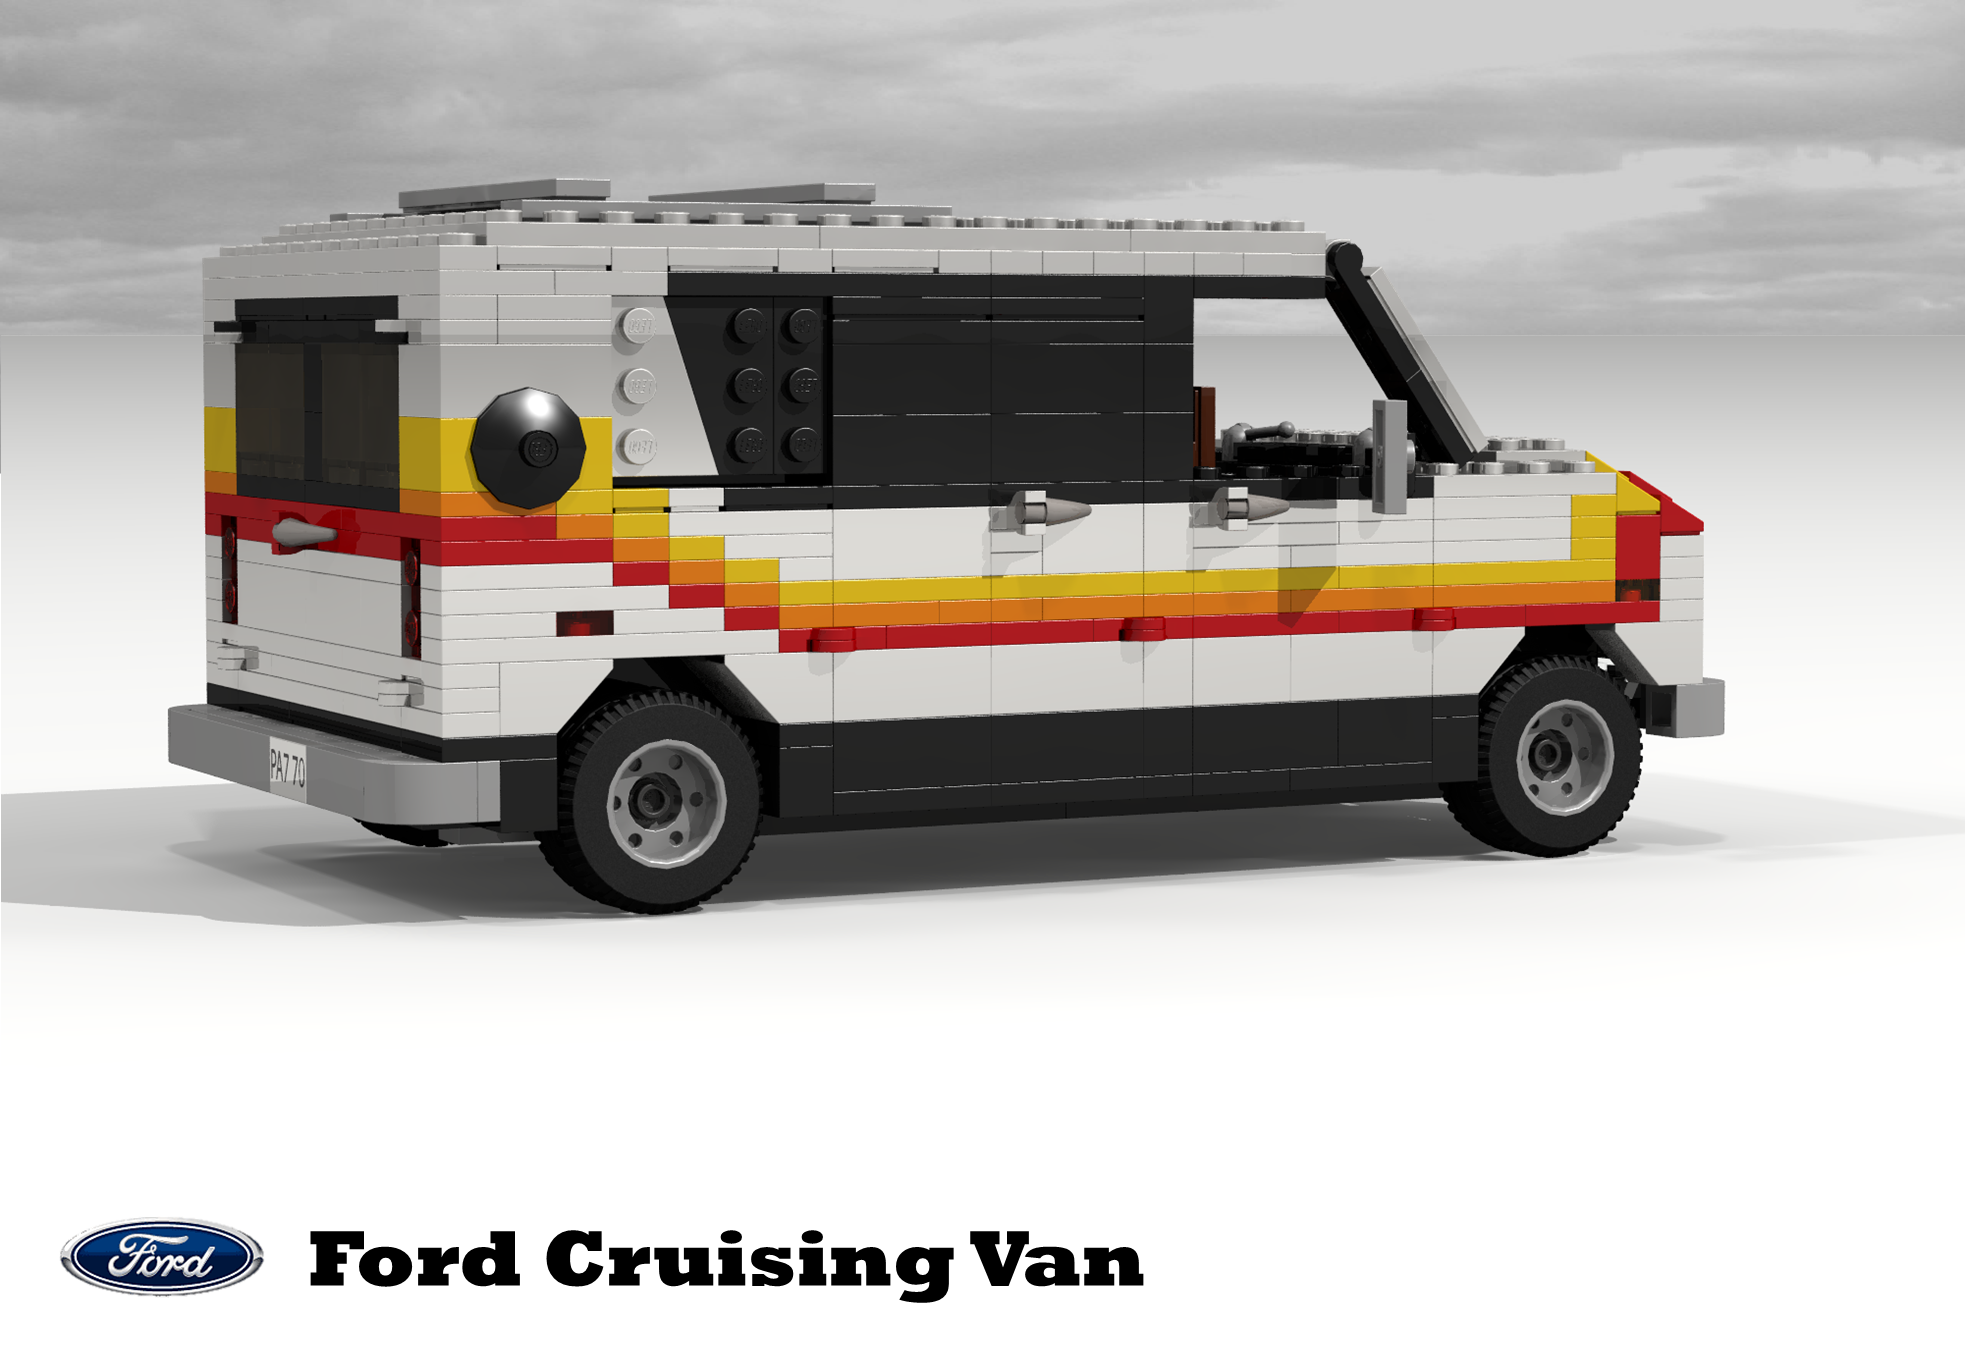 ford_cruising_van_02.png